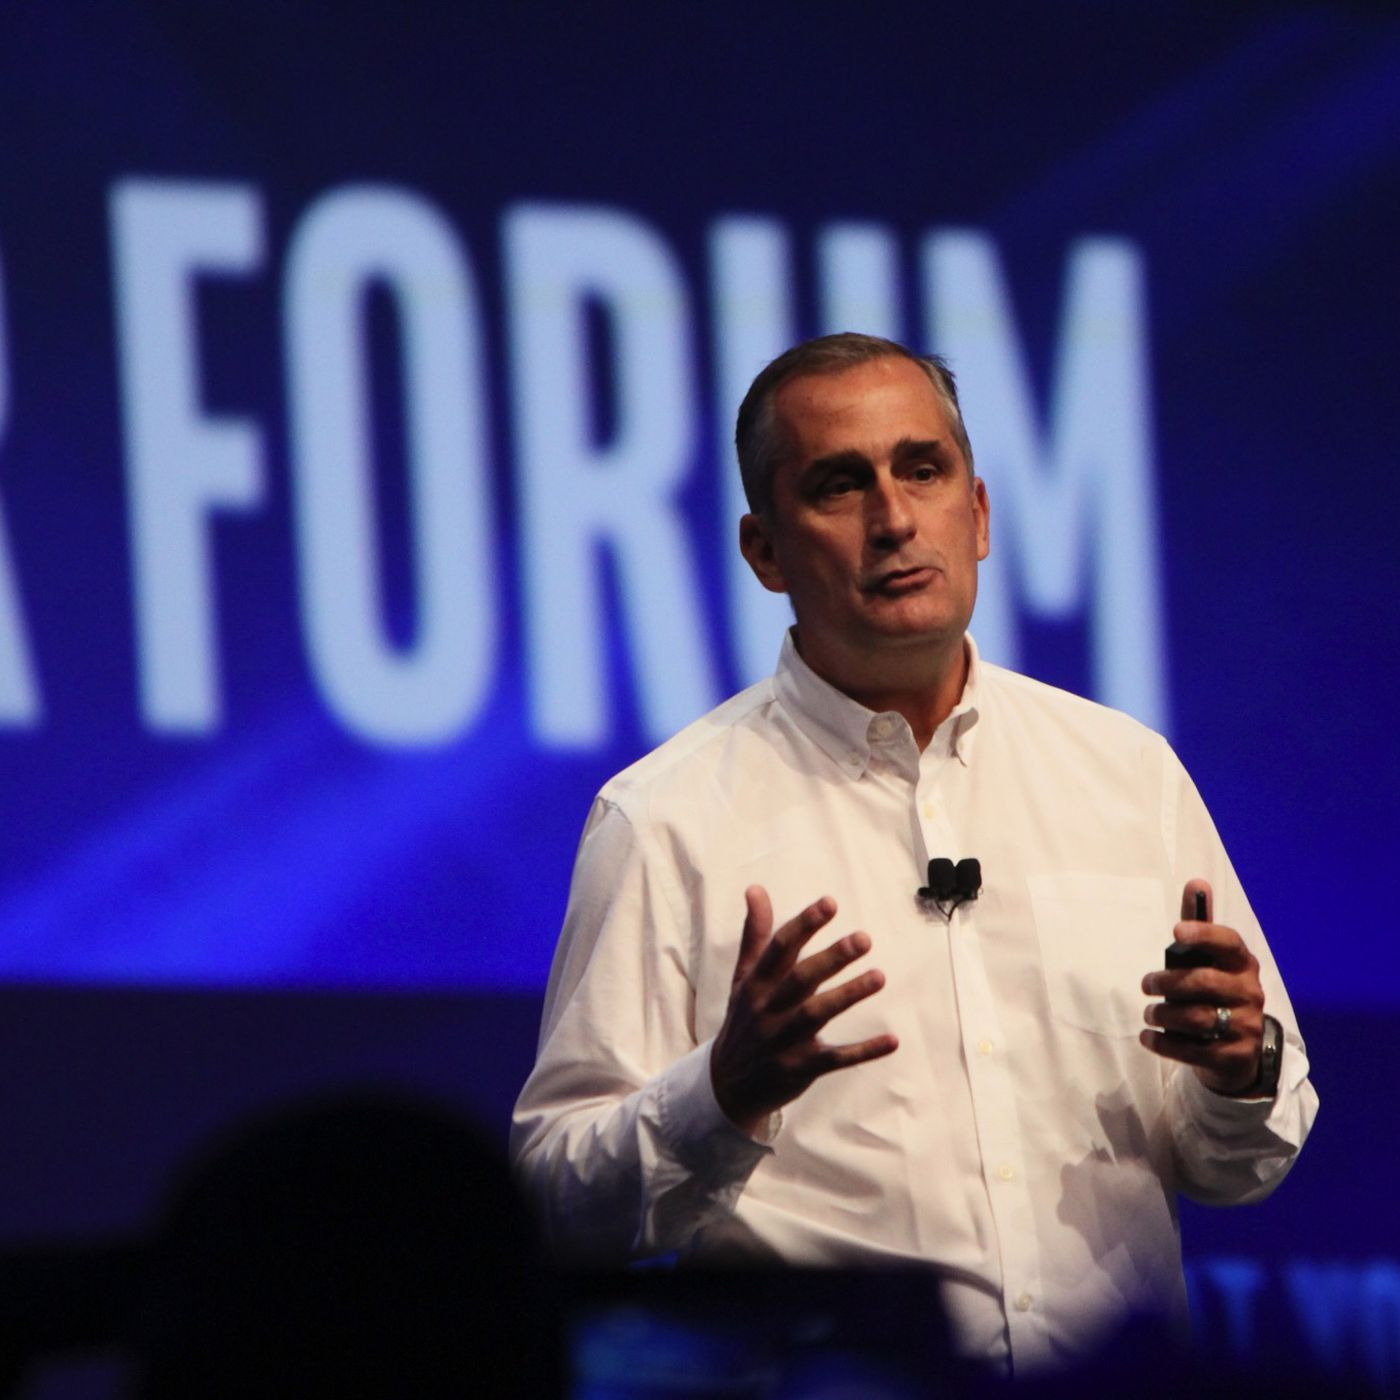 Intel will start building ARM-based smartphone chips - The Verge